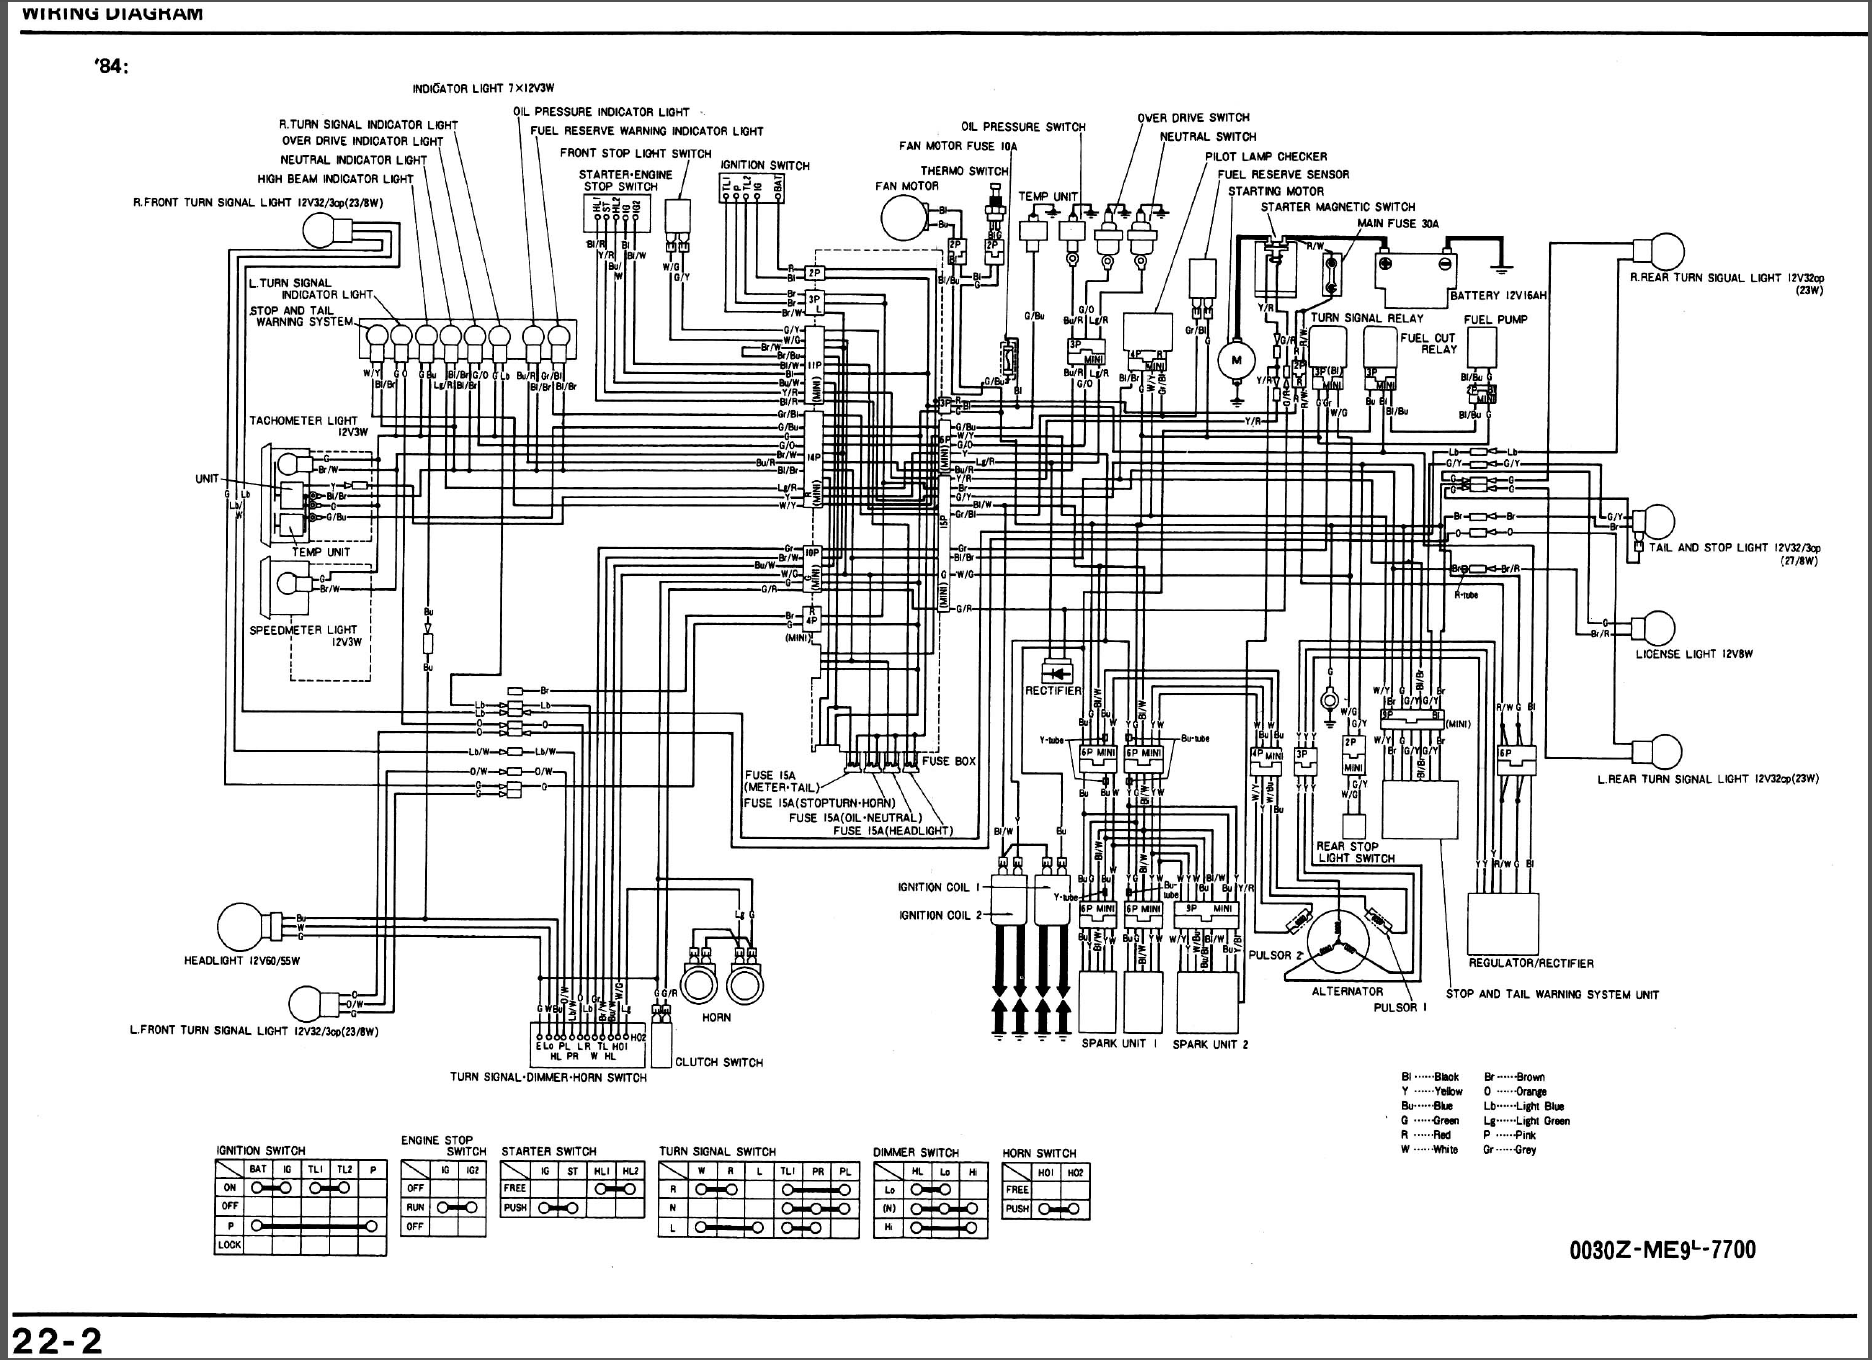 Honda Shadow Vt750 Wiring Diagram And Schematics 2000 1984 700 Rh Caferacer Net 1985 Vt700